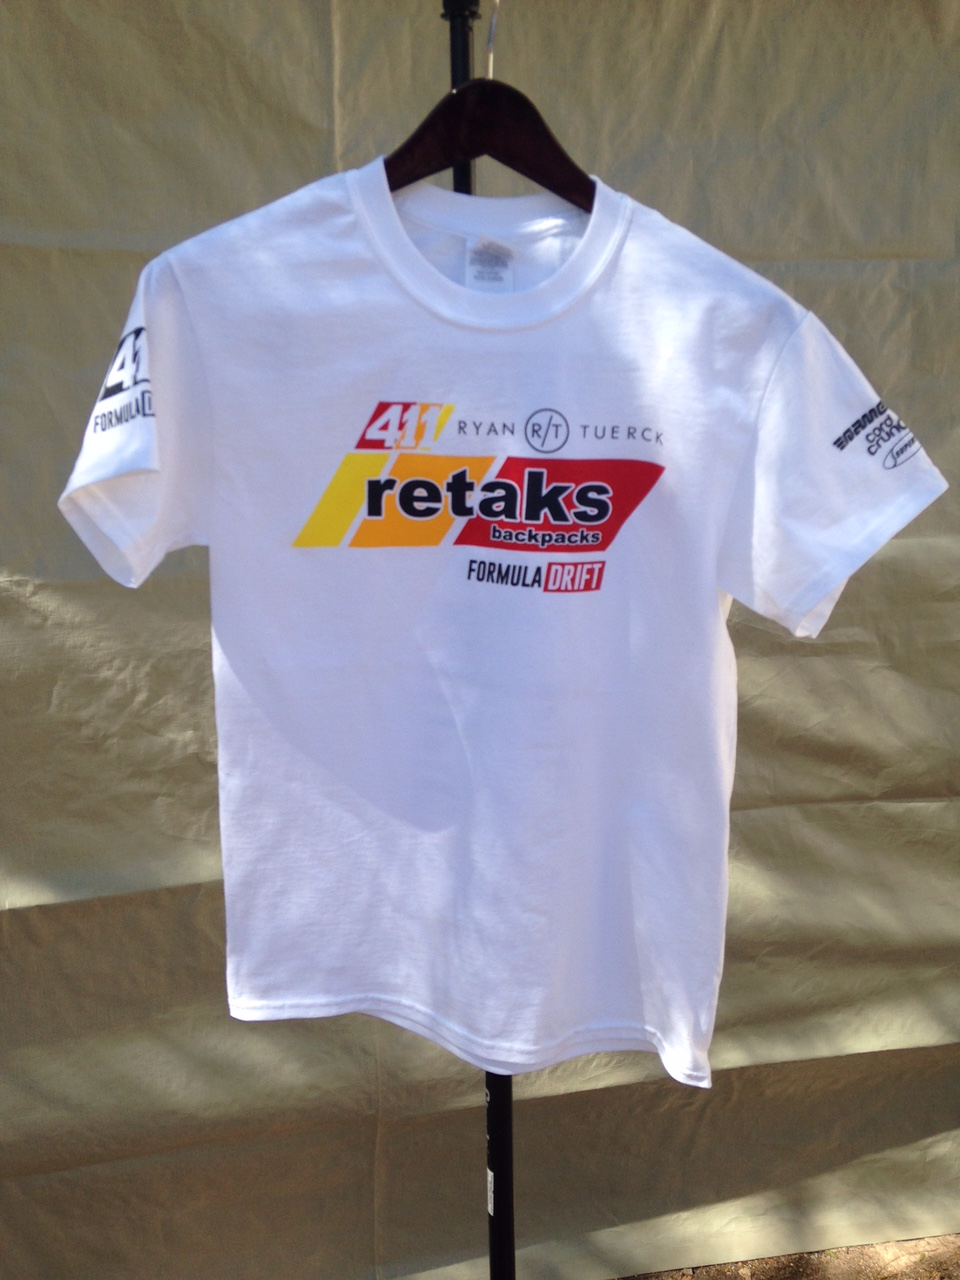 authentic retaks gear, retaks, tuerck, formulad